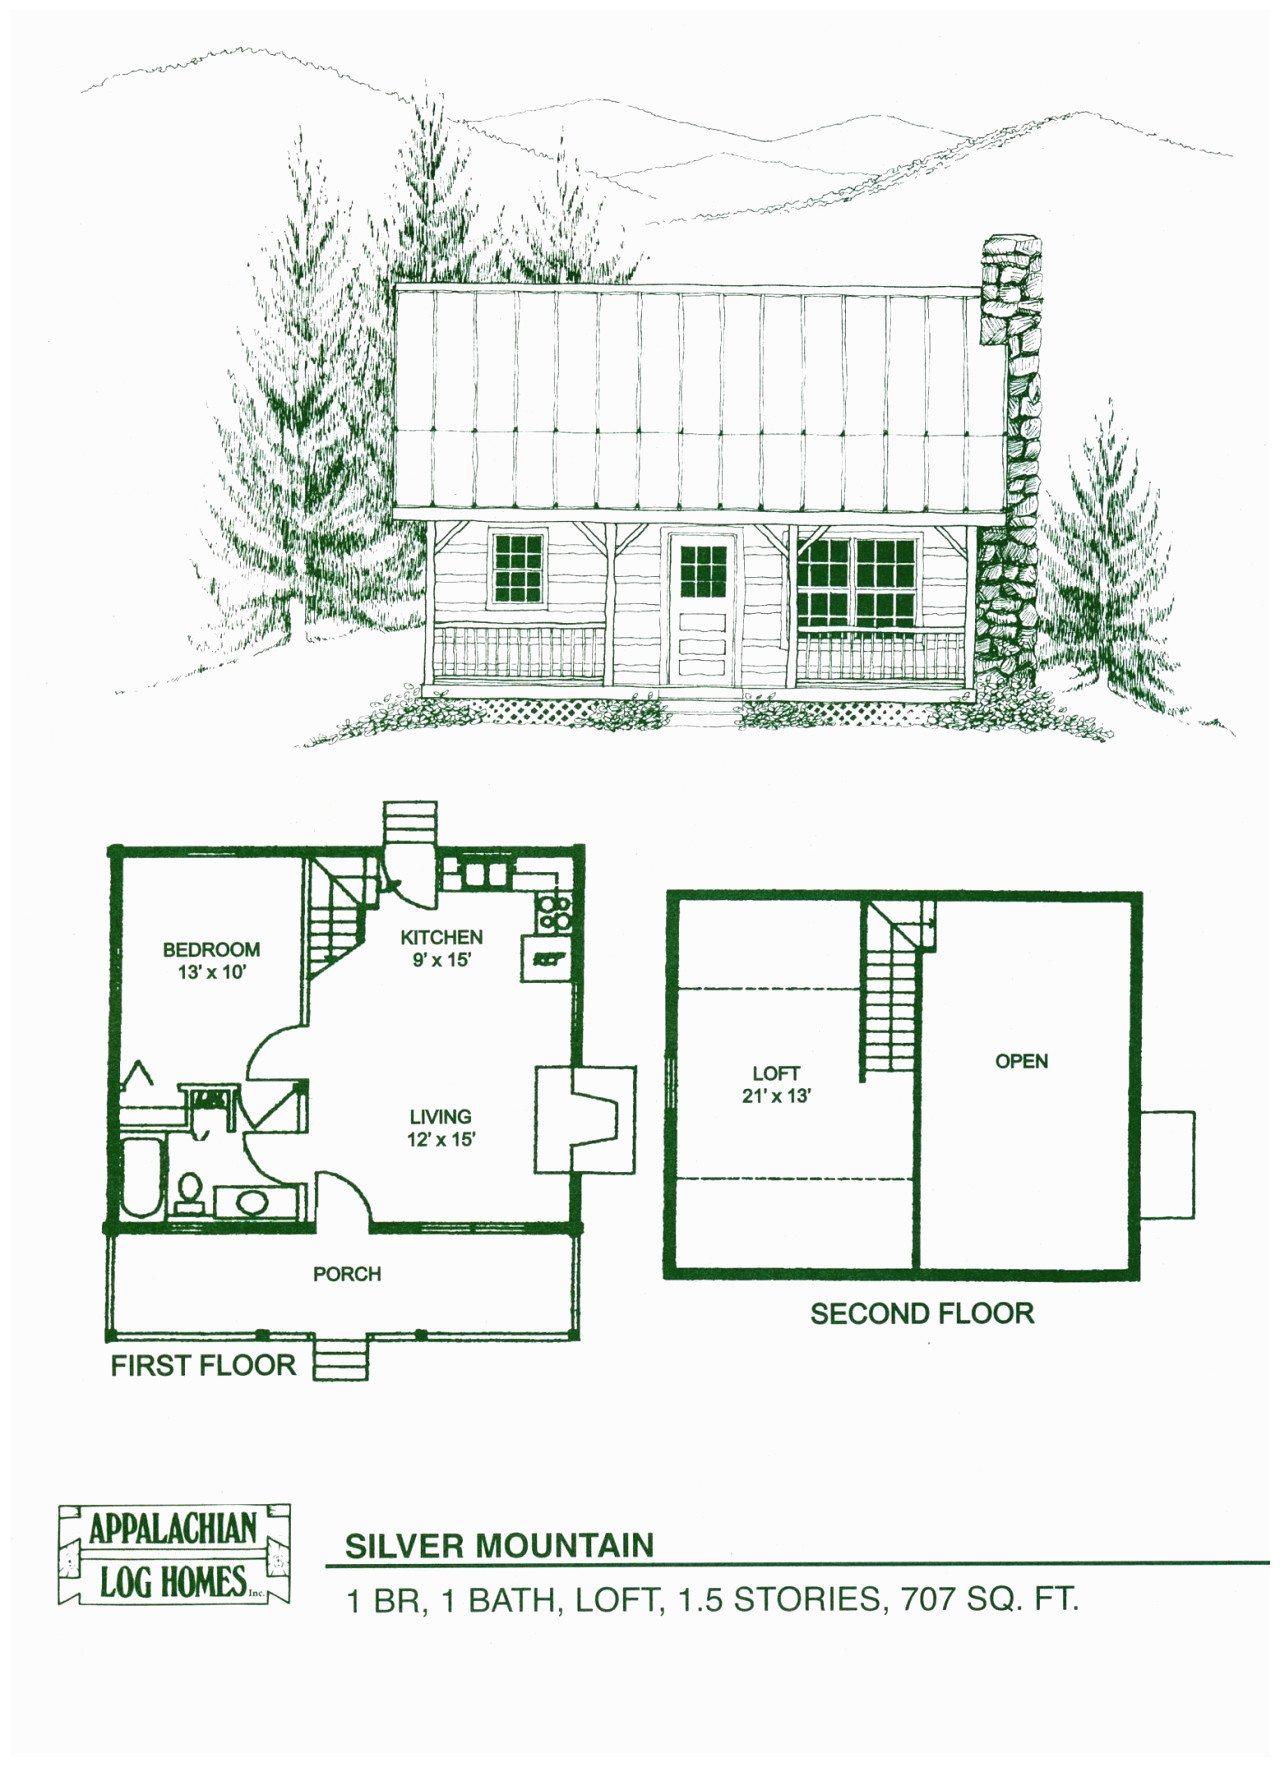 Hardwood Floor Layout Of Small House Swoon Plans Small House Planss In Gallery Of Small House Swoon Plans